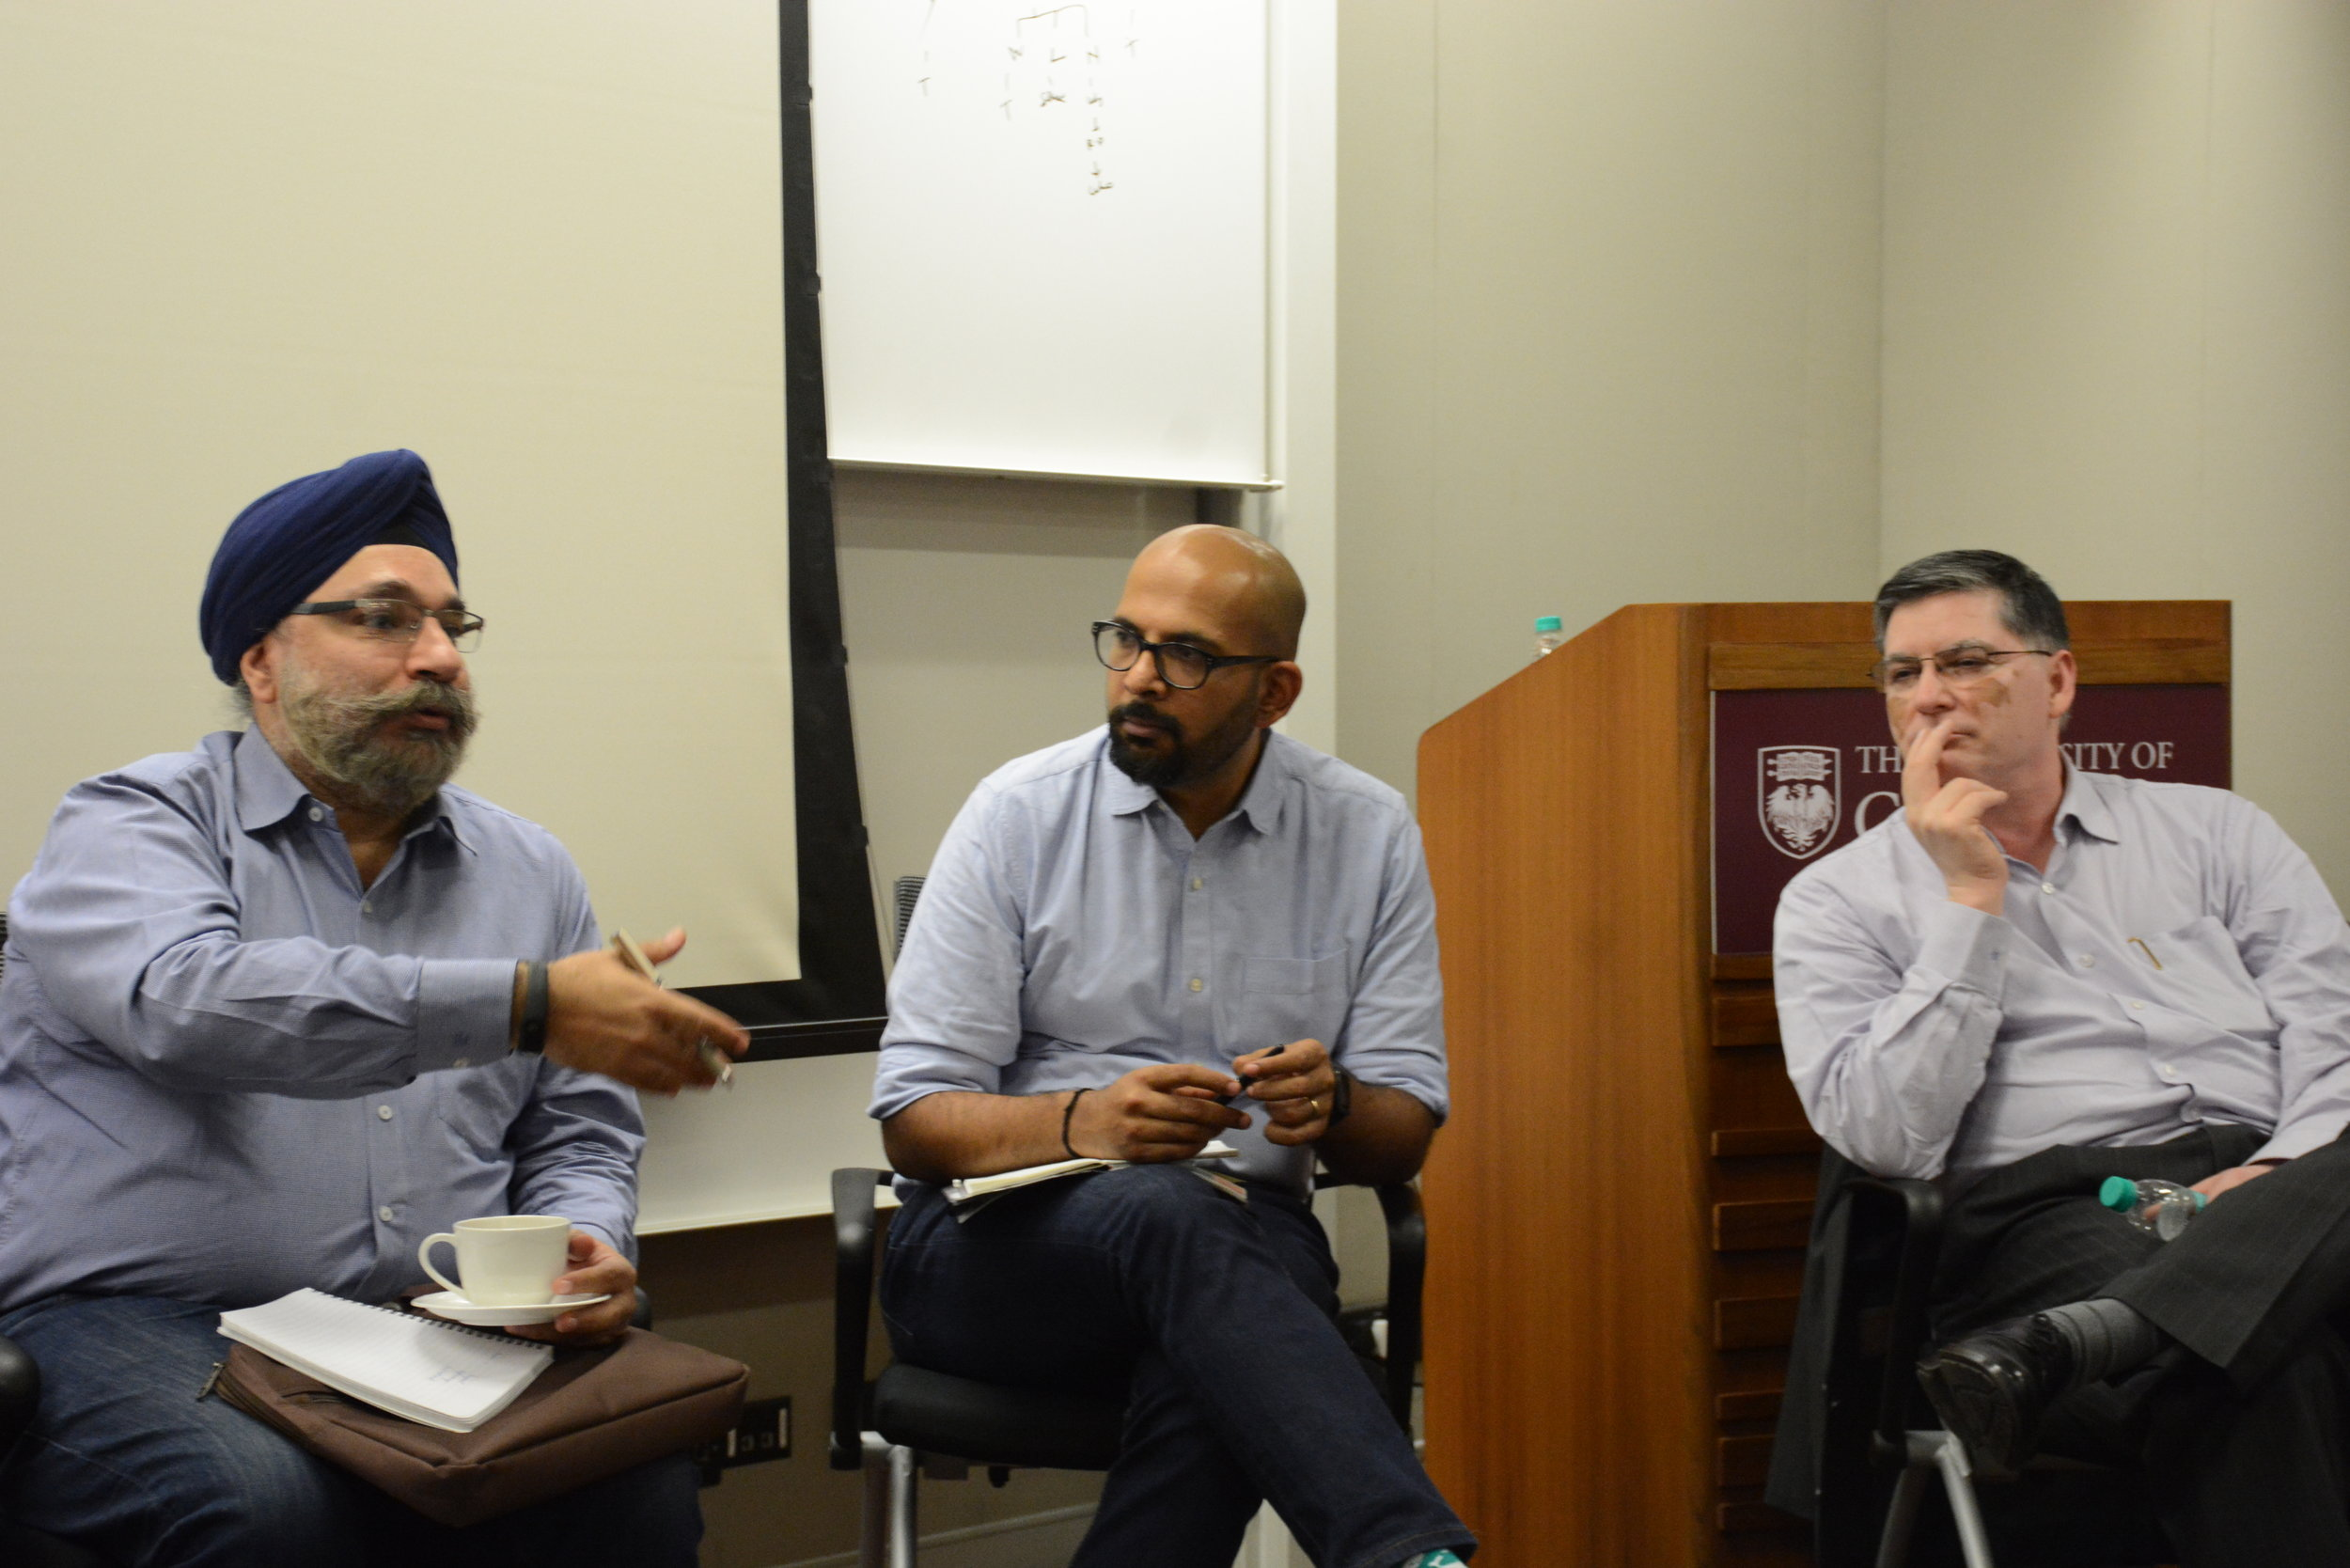 Subinder Khurana, Entrepreneur/Investor  Santhosh Ramdoss, Michael and Susan Dell Foundation  Dilip Chenoy, Startup Advisor, Formerly NSDC